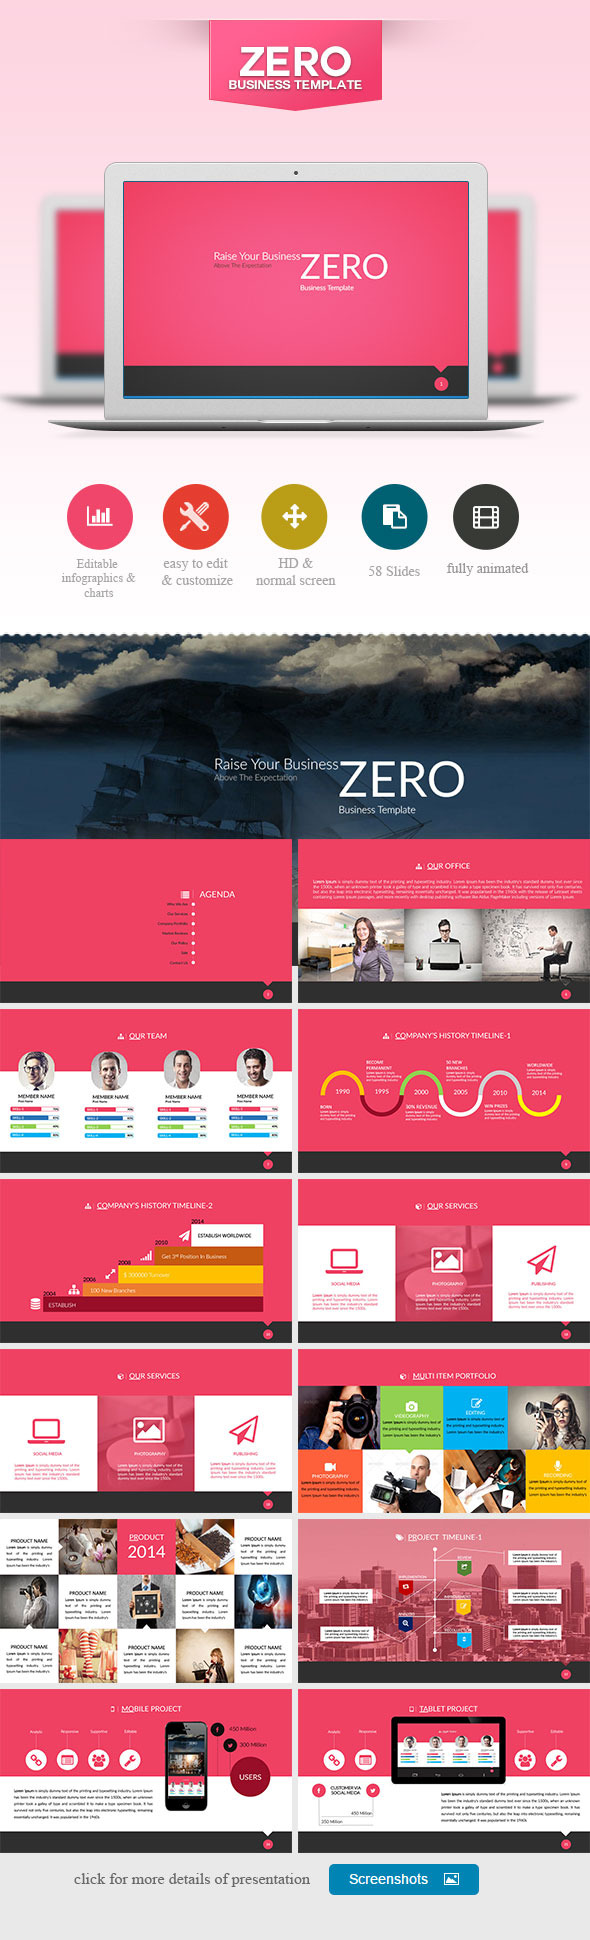 GraphicRiver ZERO Power Point Presentation 9330620